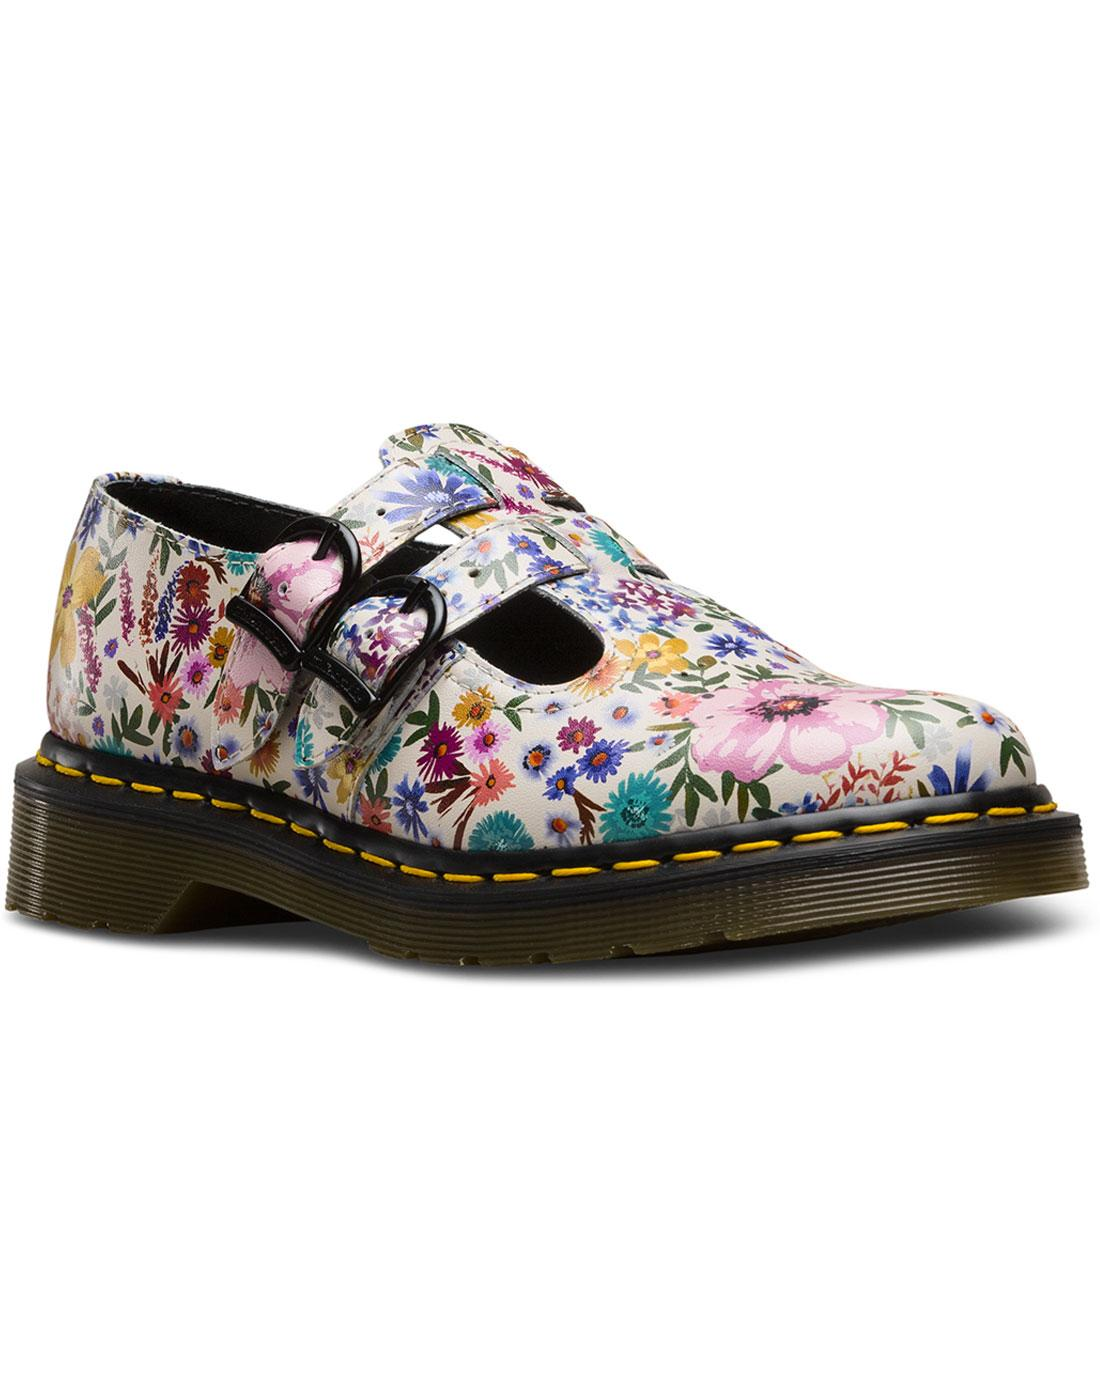 Wanderlust 8065 DR MARTENS Floral Mary Jane Shoes